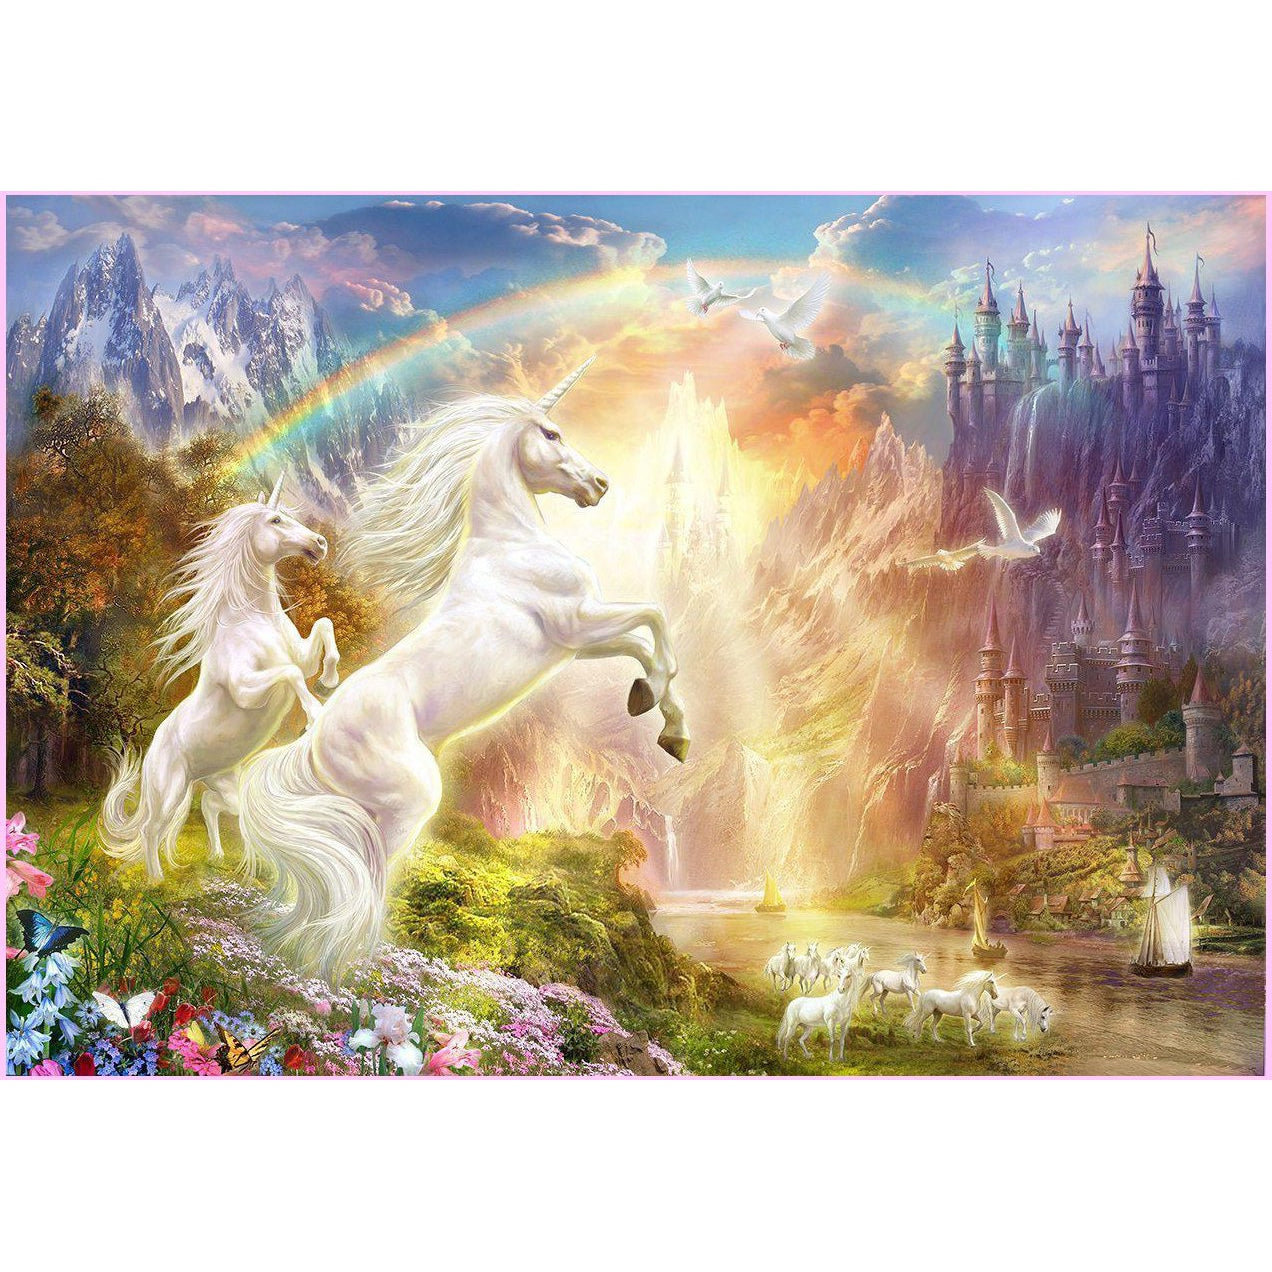 Sunset Unicorns-Diamond Painting Kit USPS-30x40cm (12x16 in)-Square-Heartful Diamonds